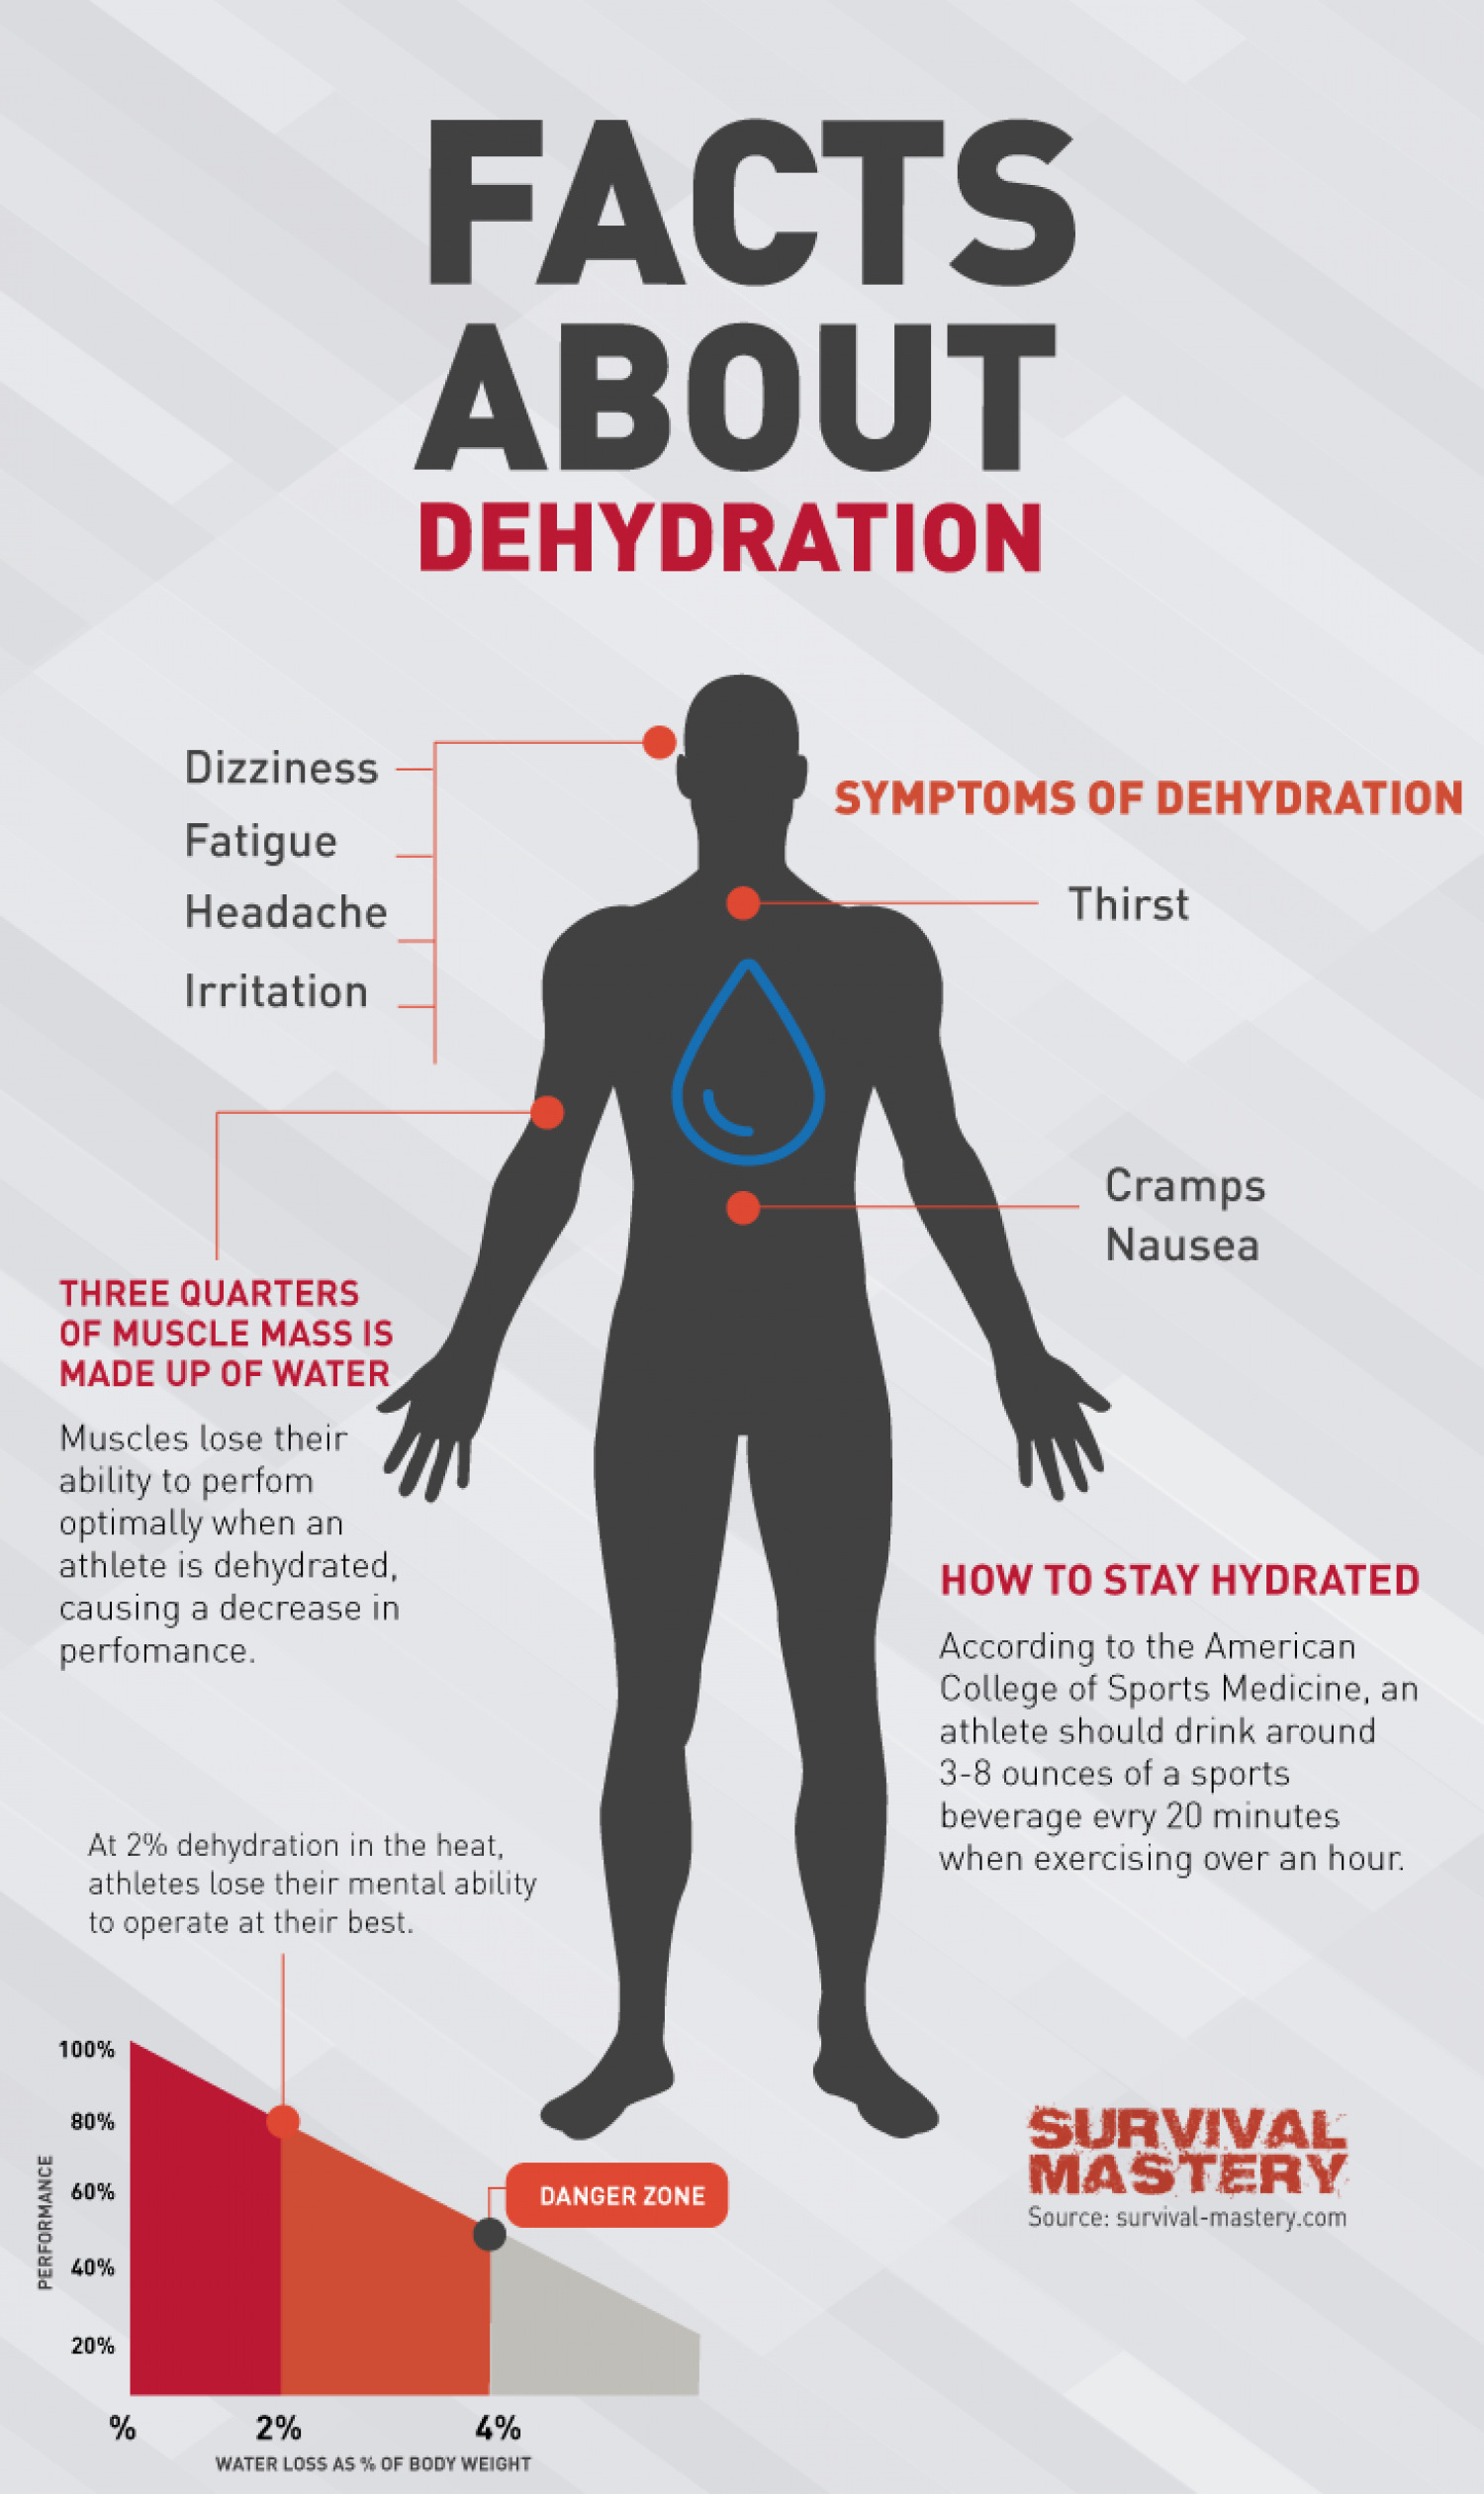 infographic showing body makeup of water, symptoms of dehydration and how to stay hydrated